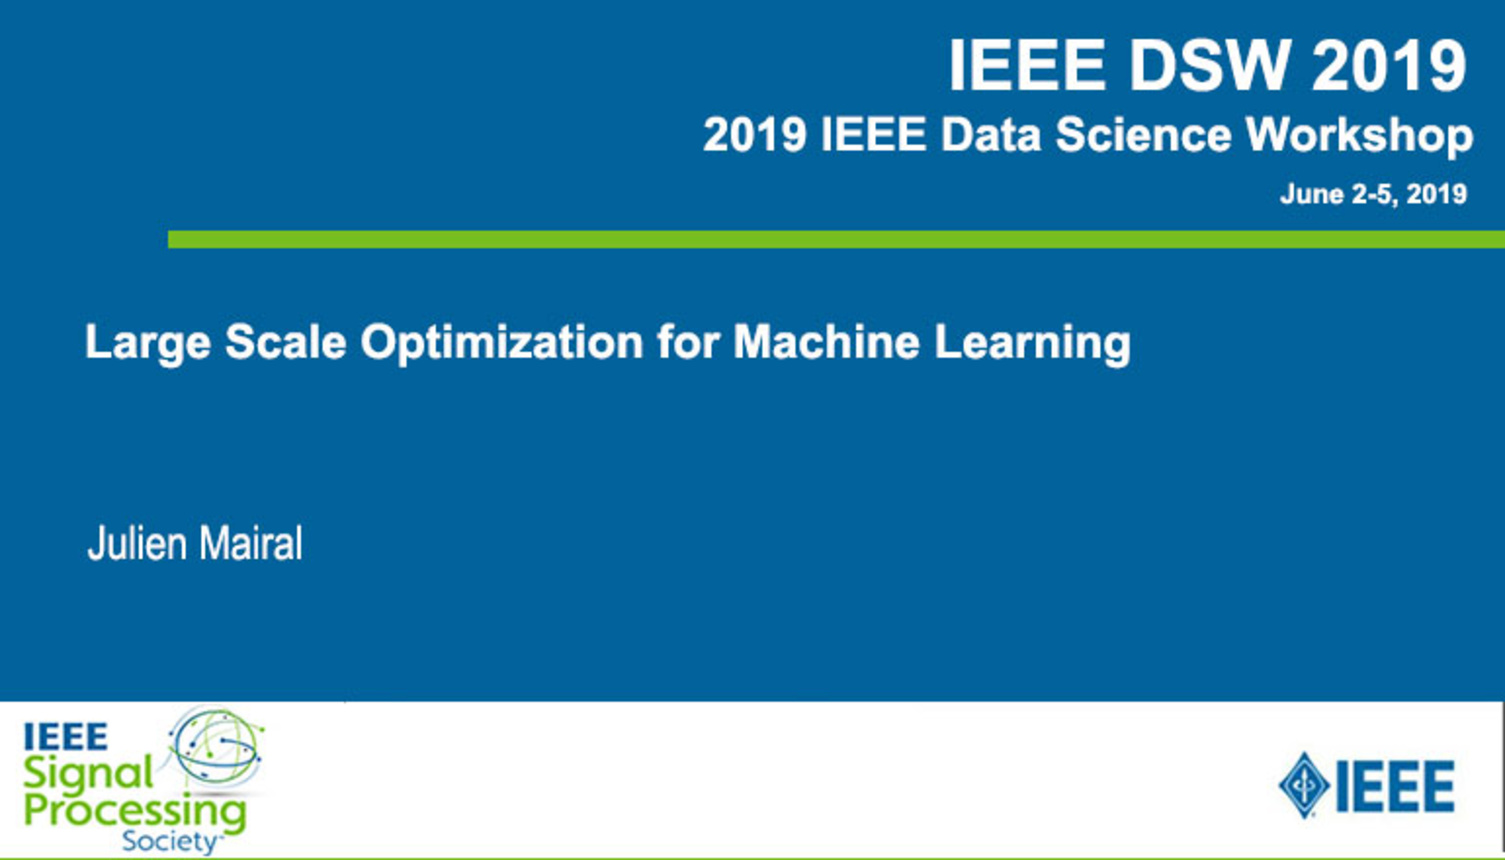 Large Scale Optimization for Machine Learning